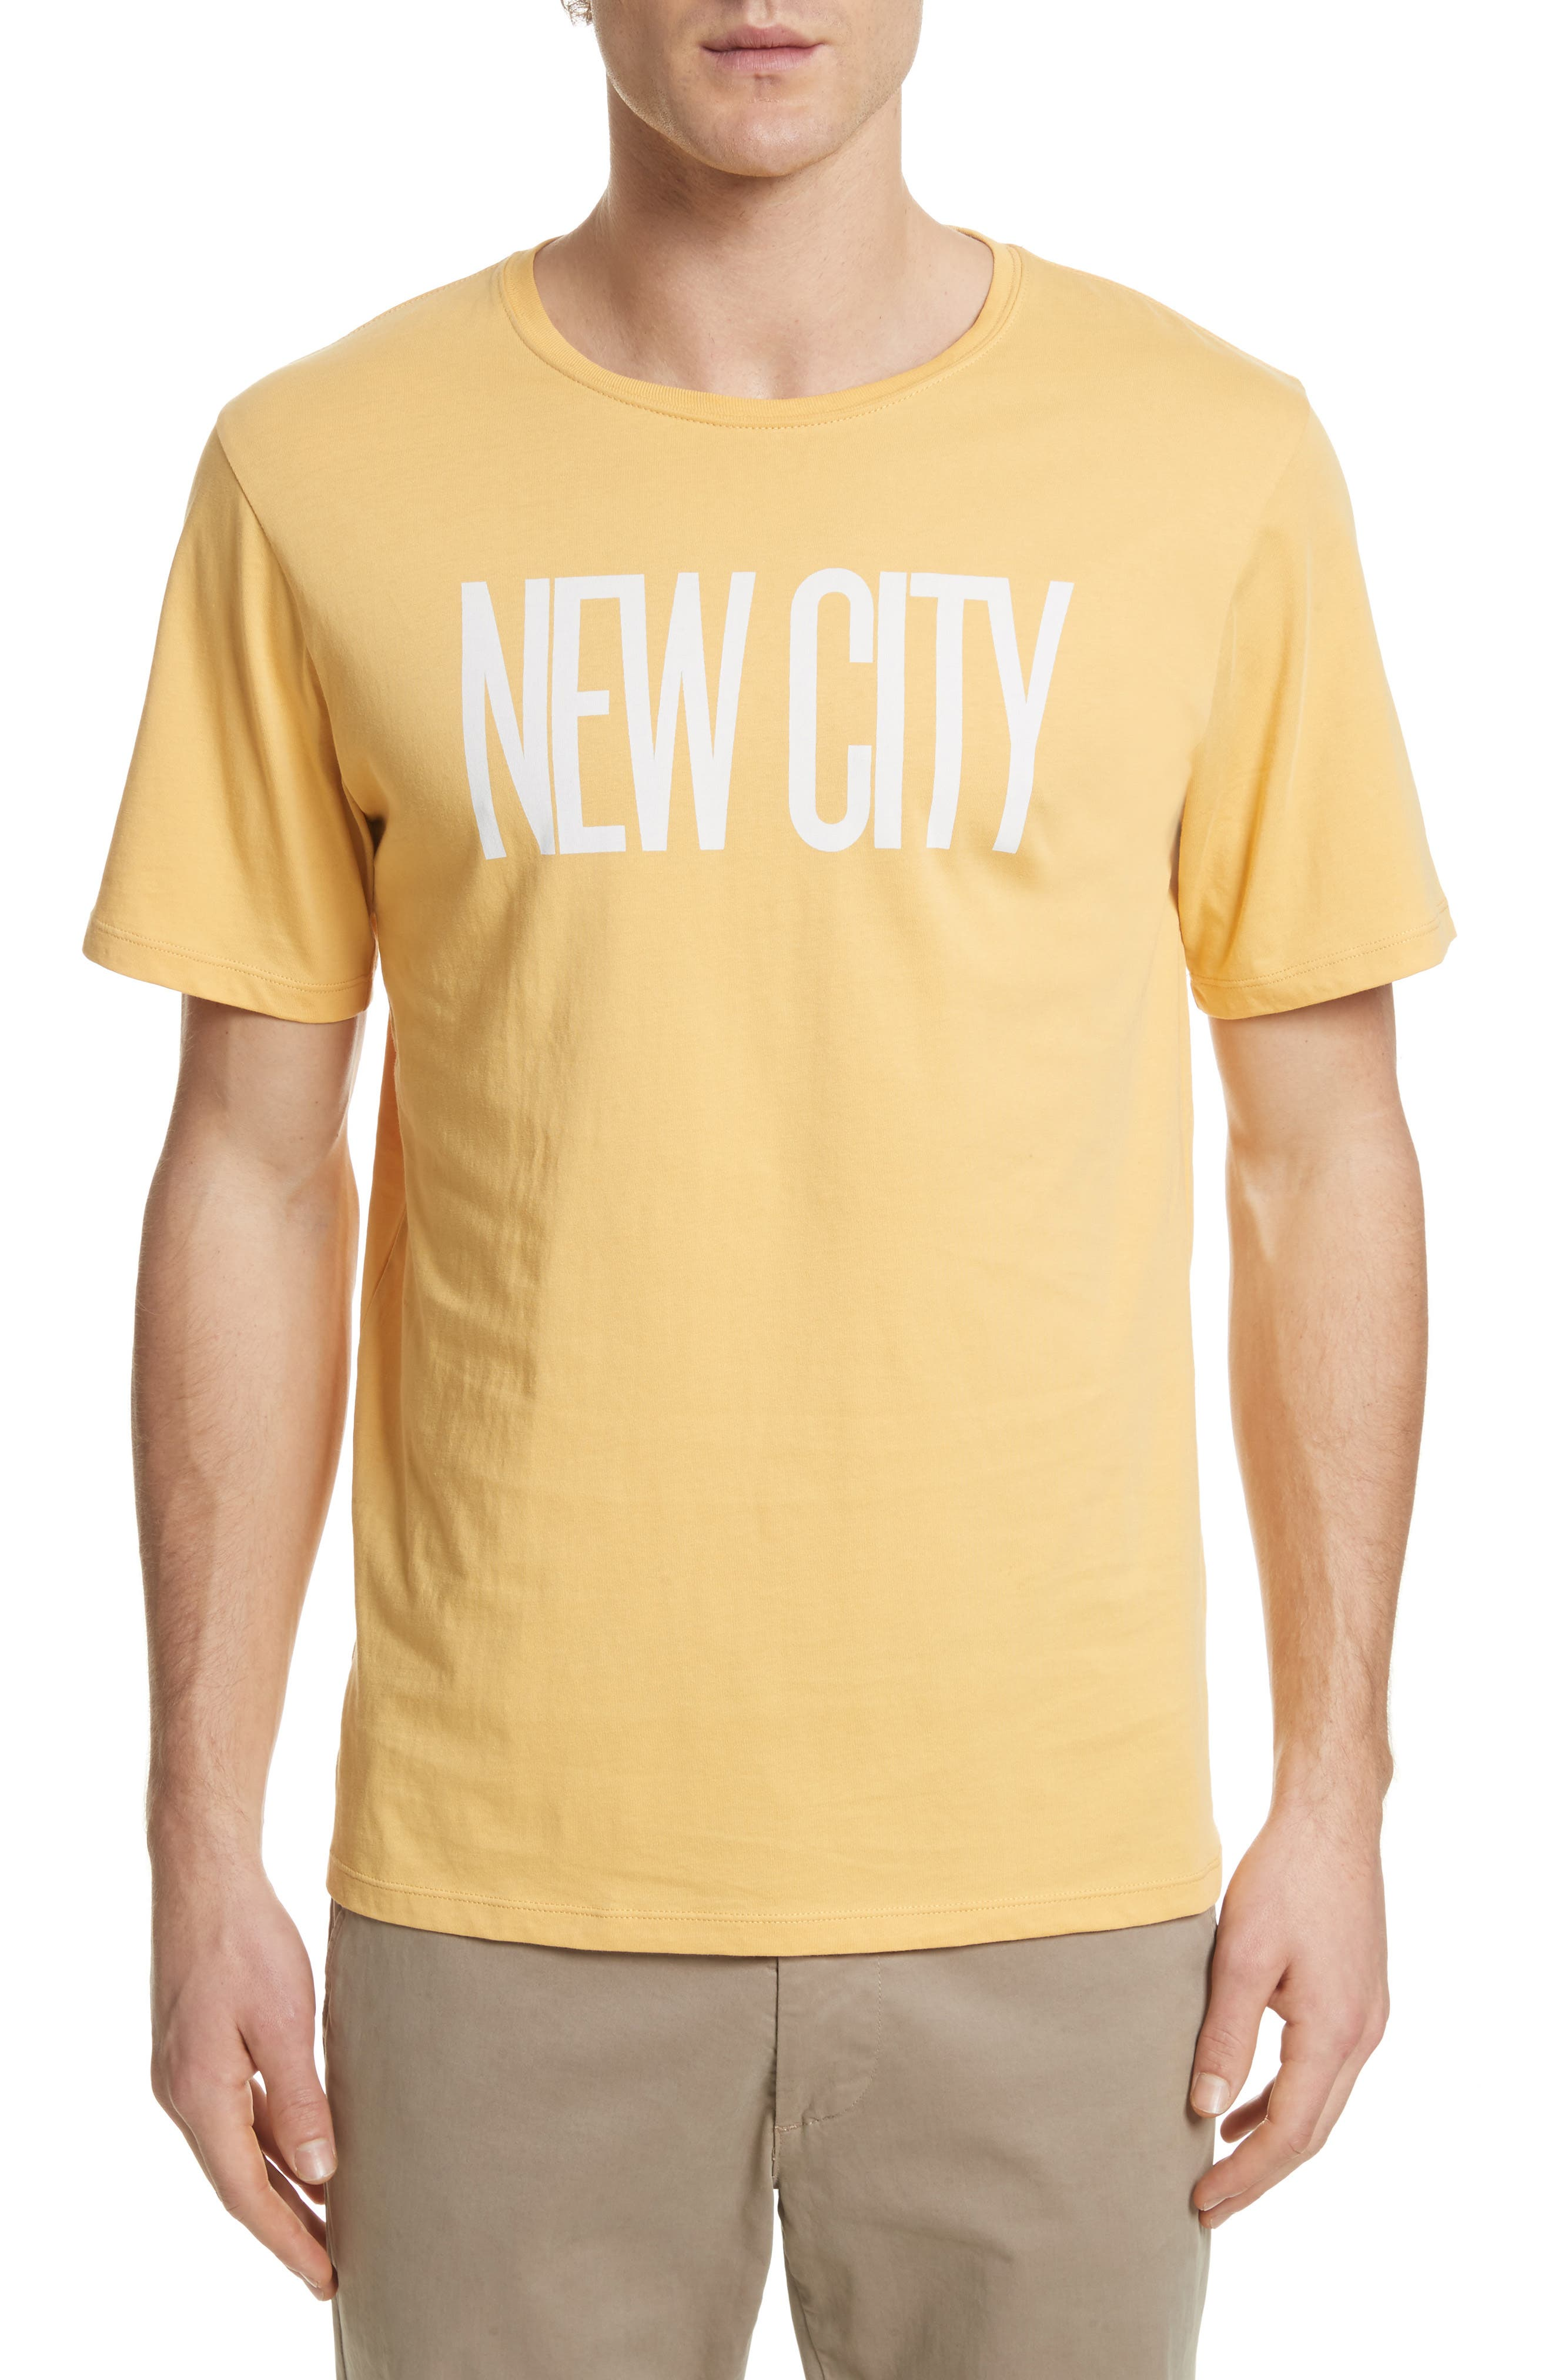 New City Graphic T-Shirt,                         Main,                         color, Dusty Amber